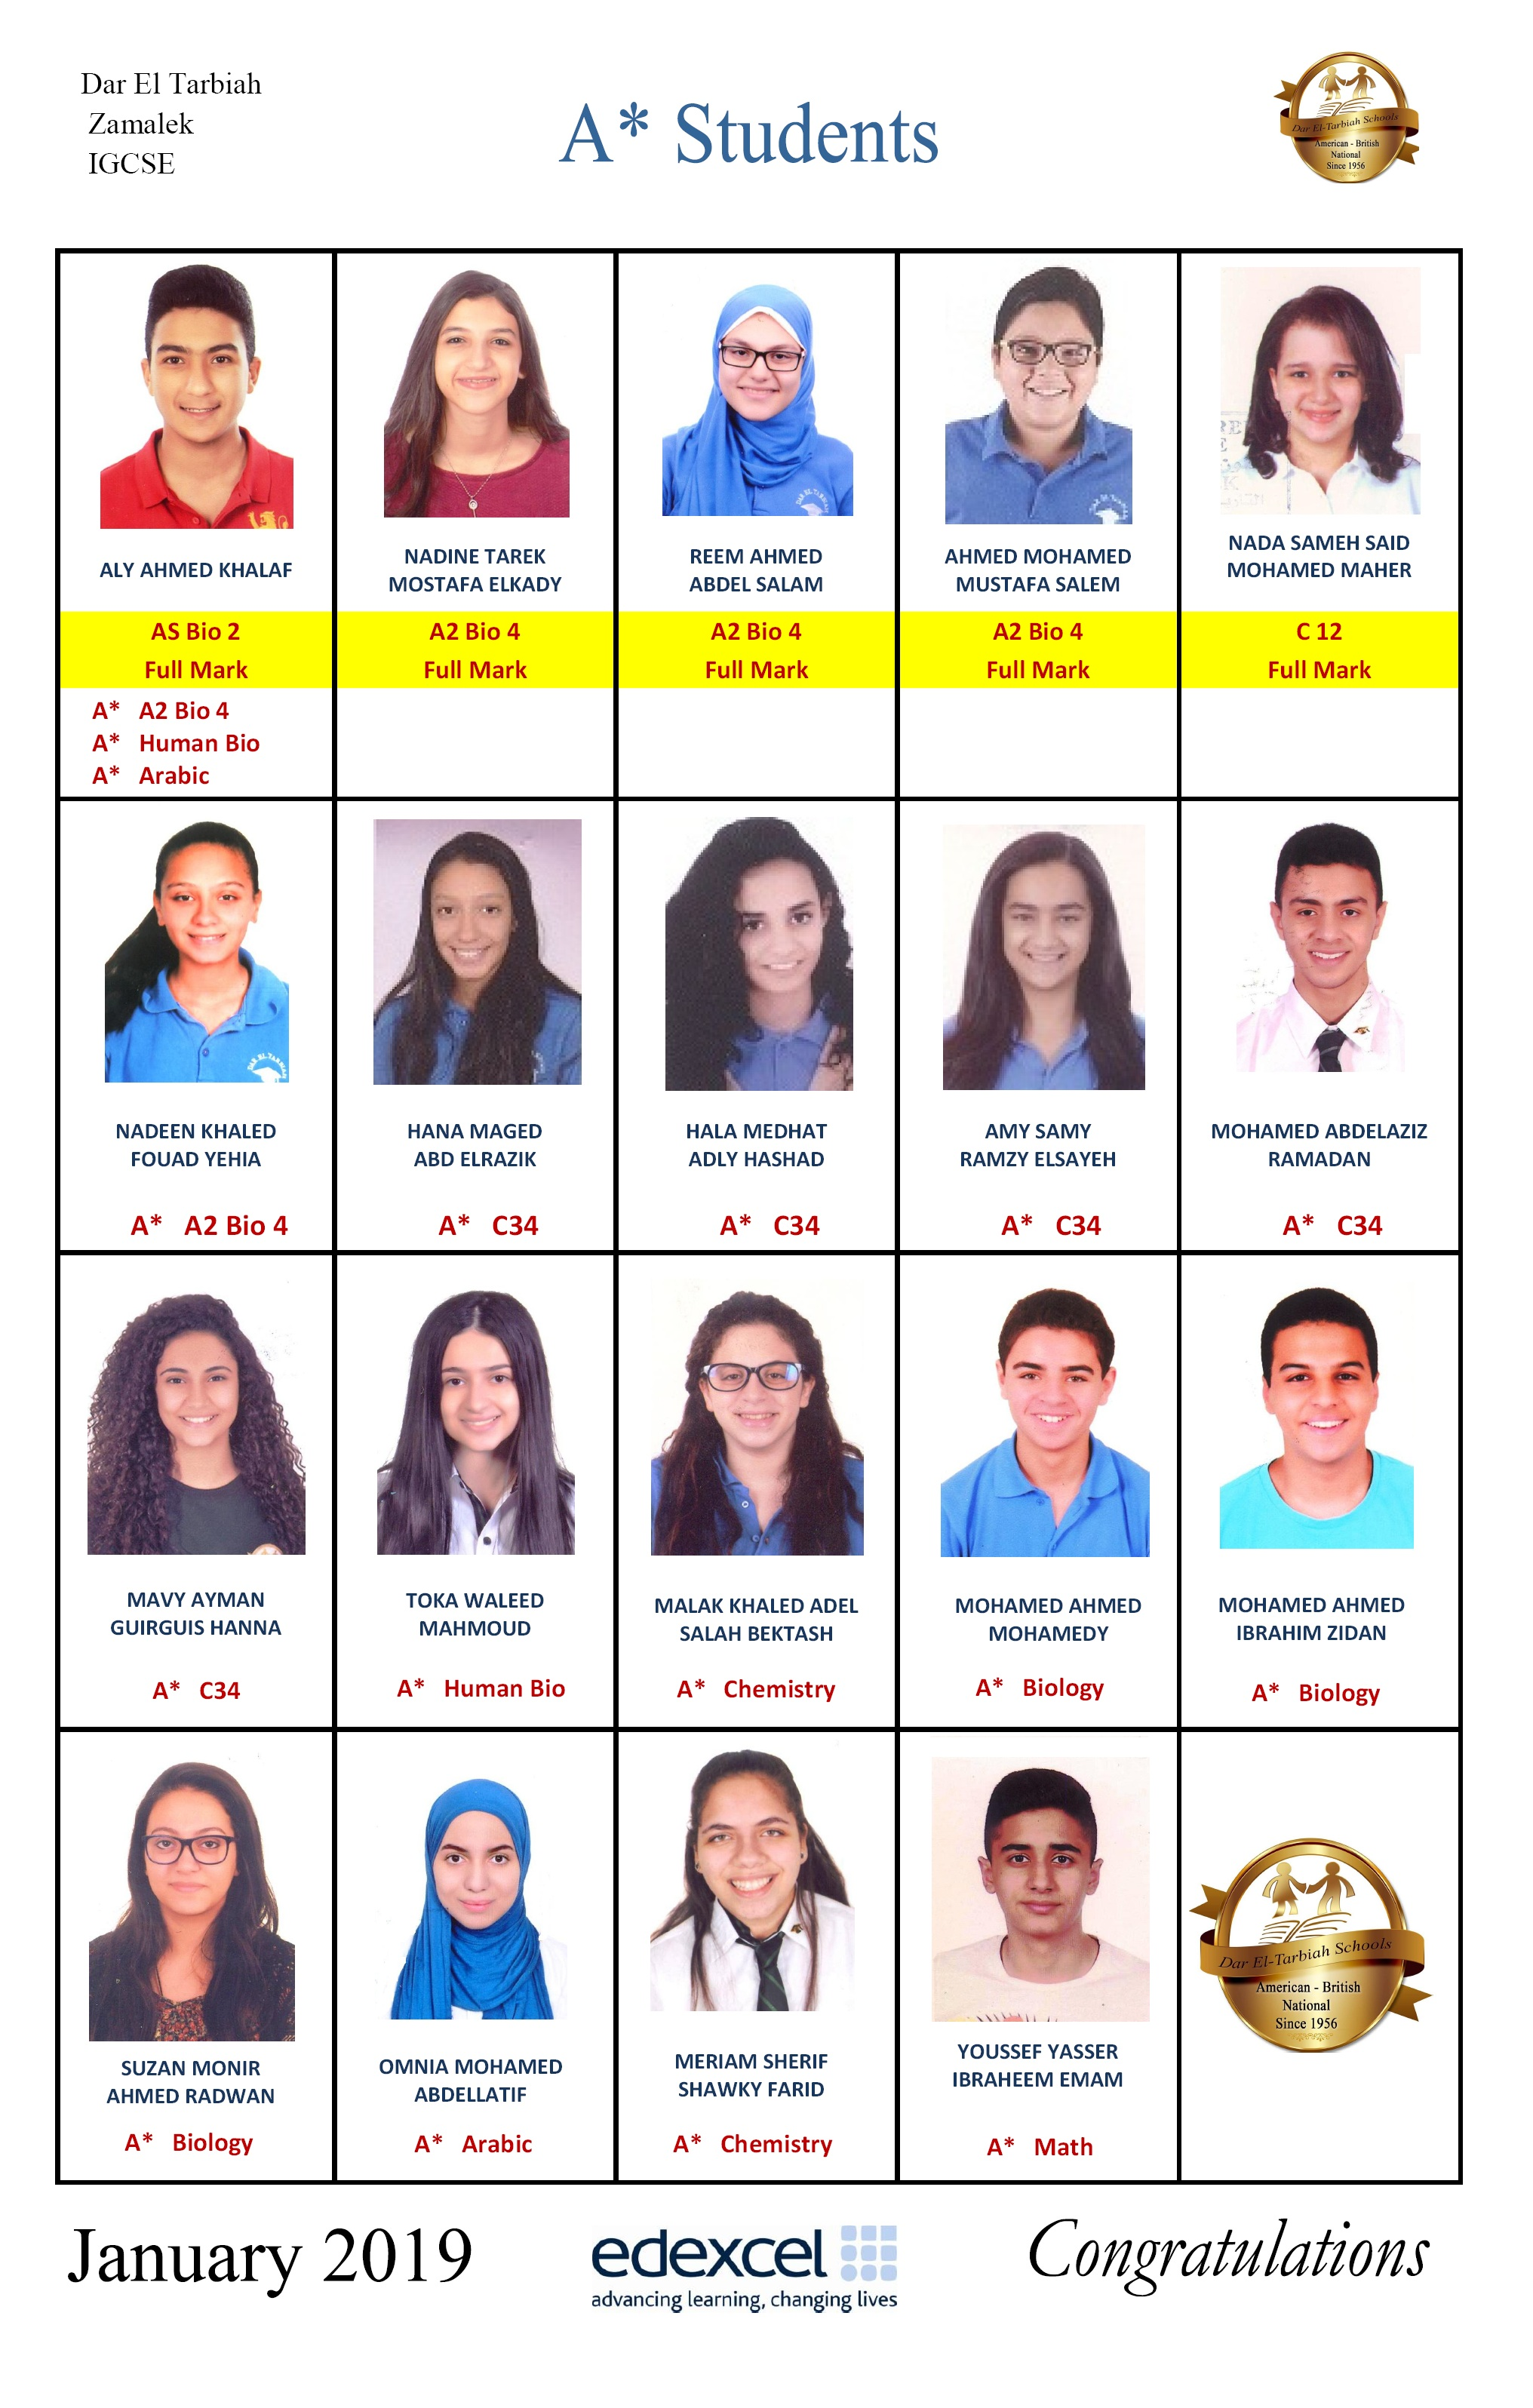 IG Zamalek : A* Students January 2019